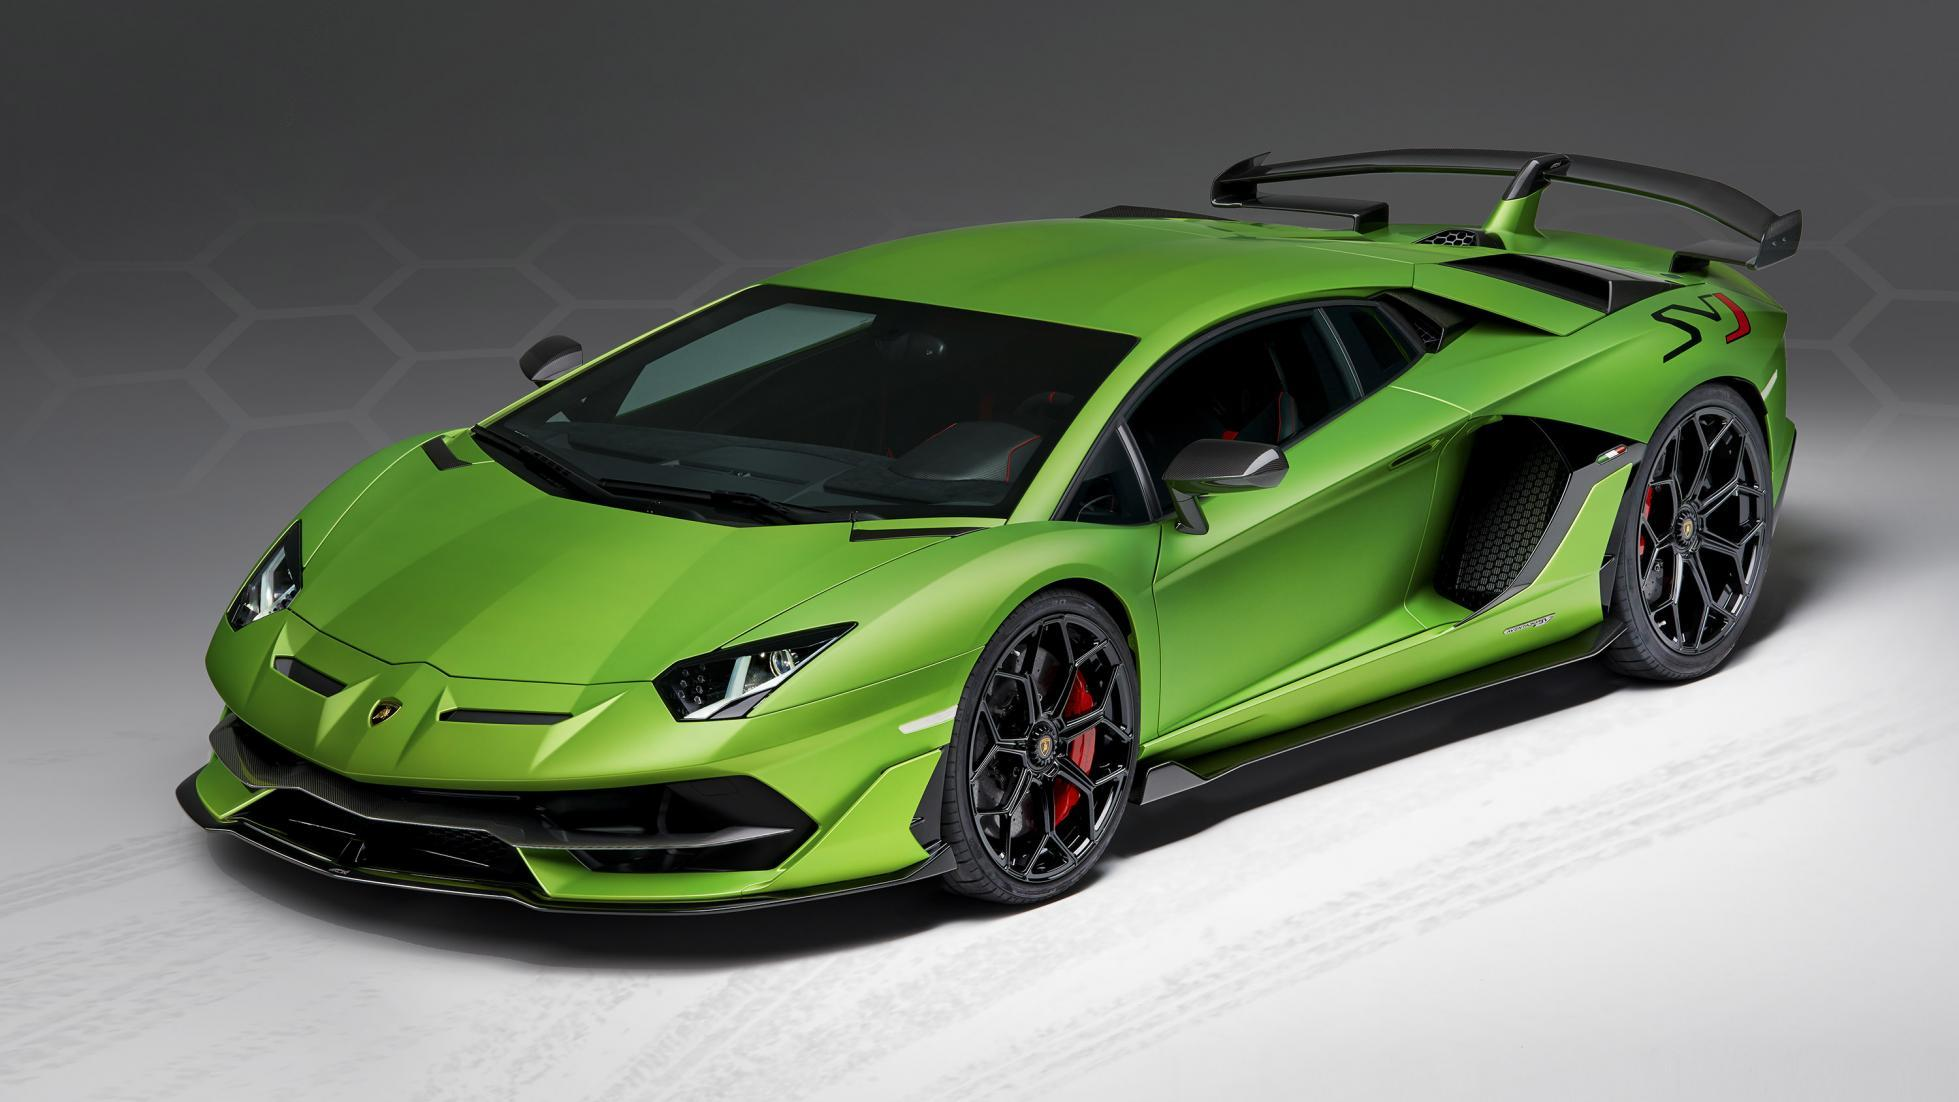 Lamborghini Aventador Svj Laptimes Specs Performance Data